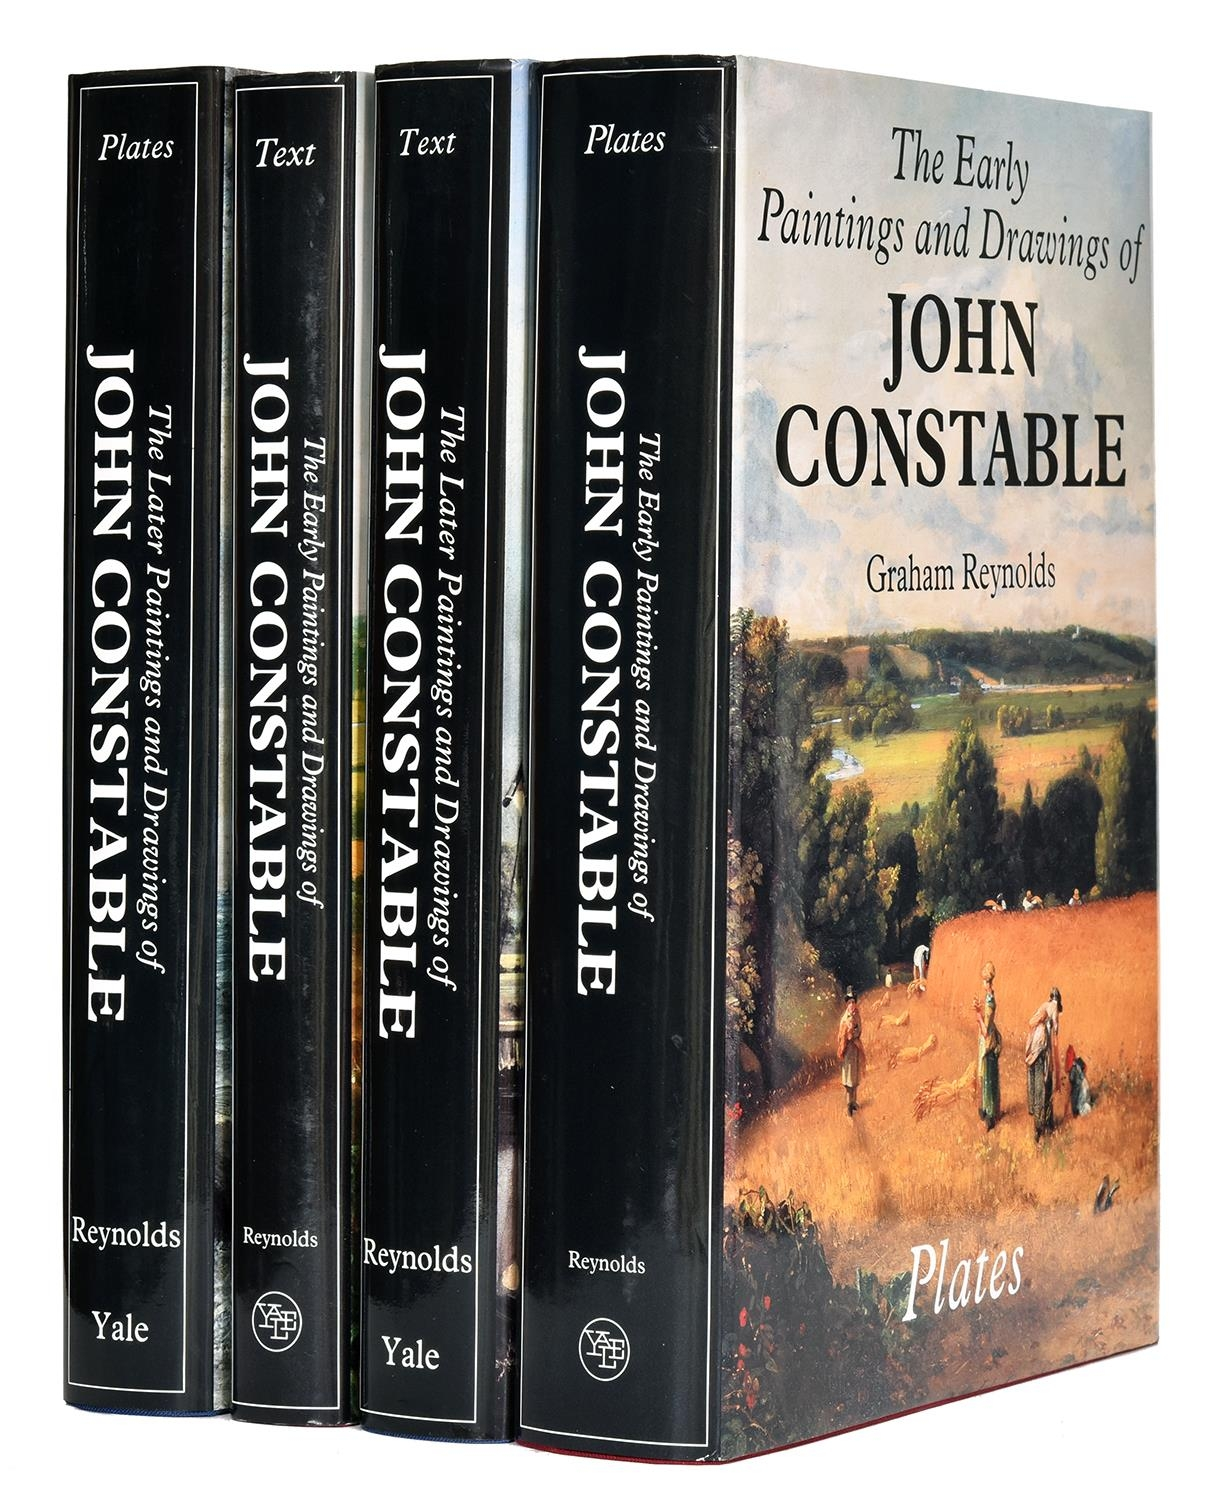 Reynolds (Graham) ' The Paintings and Drawings of John Constable,4 vols, illustrated, dust jackets,